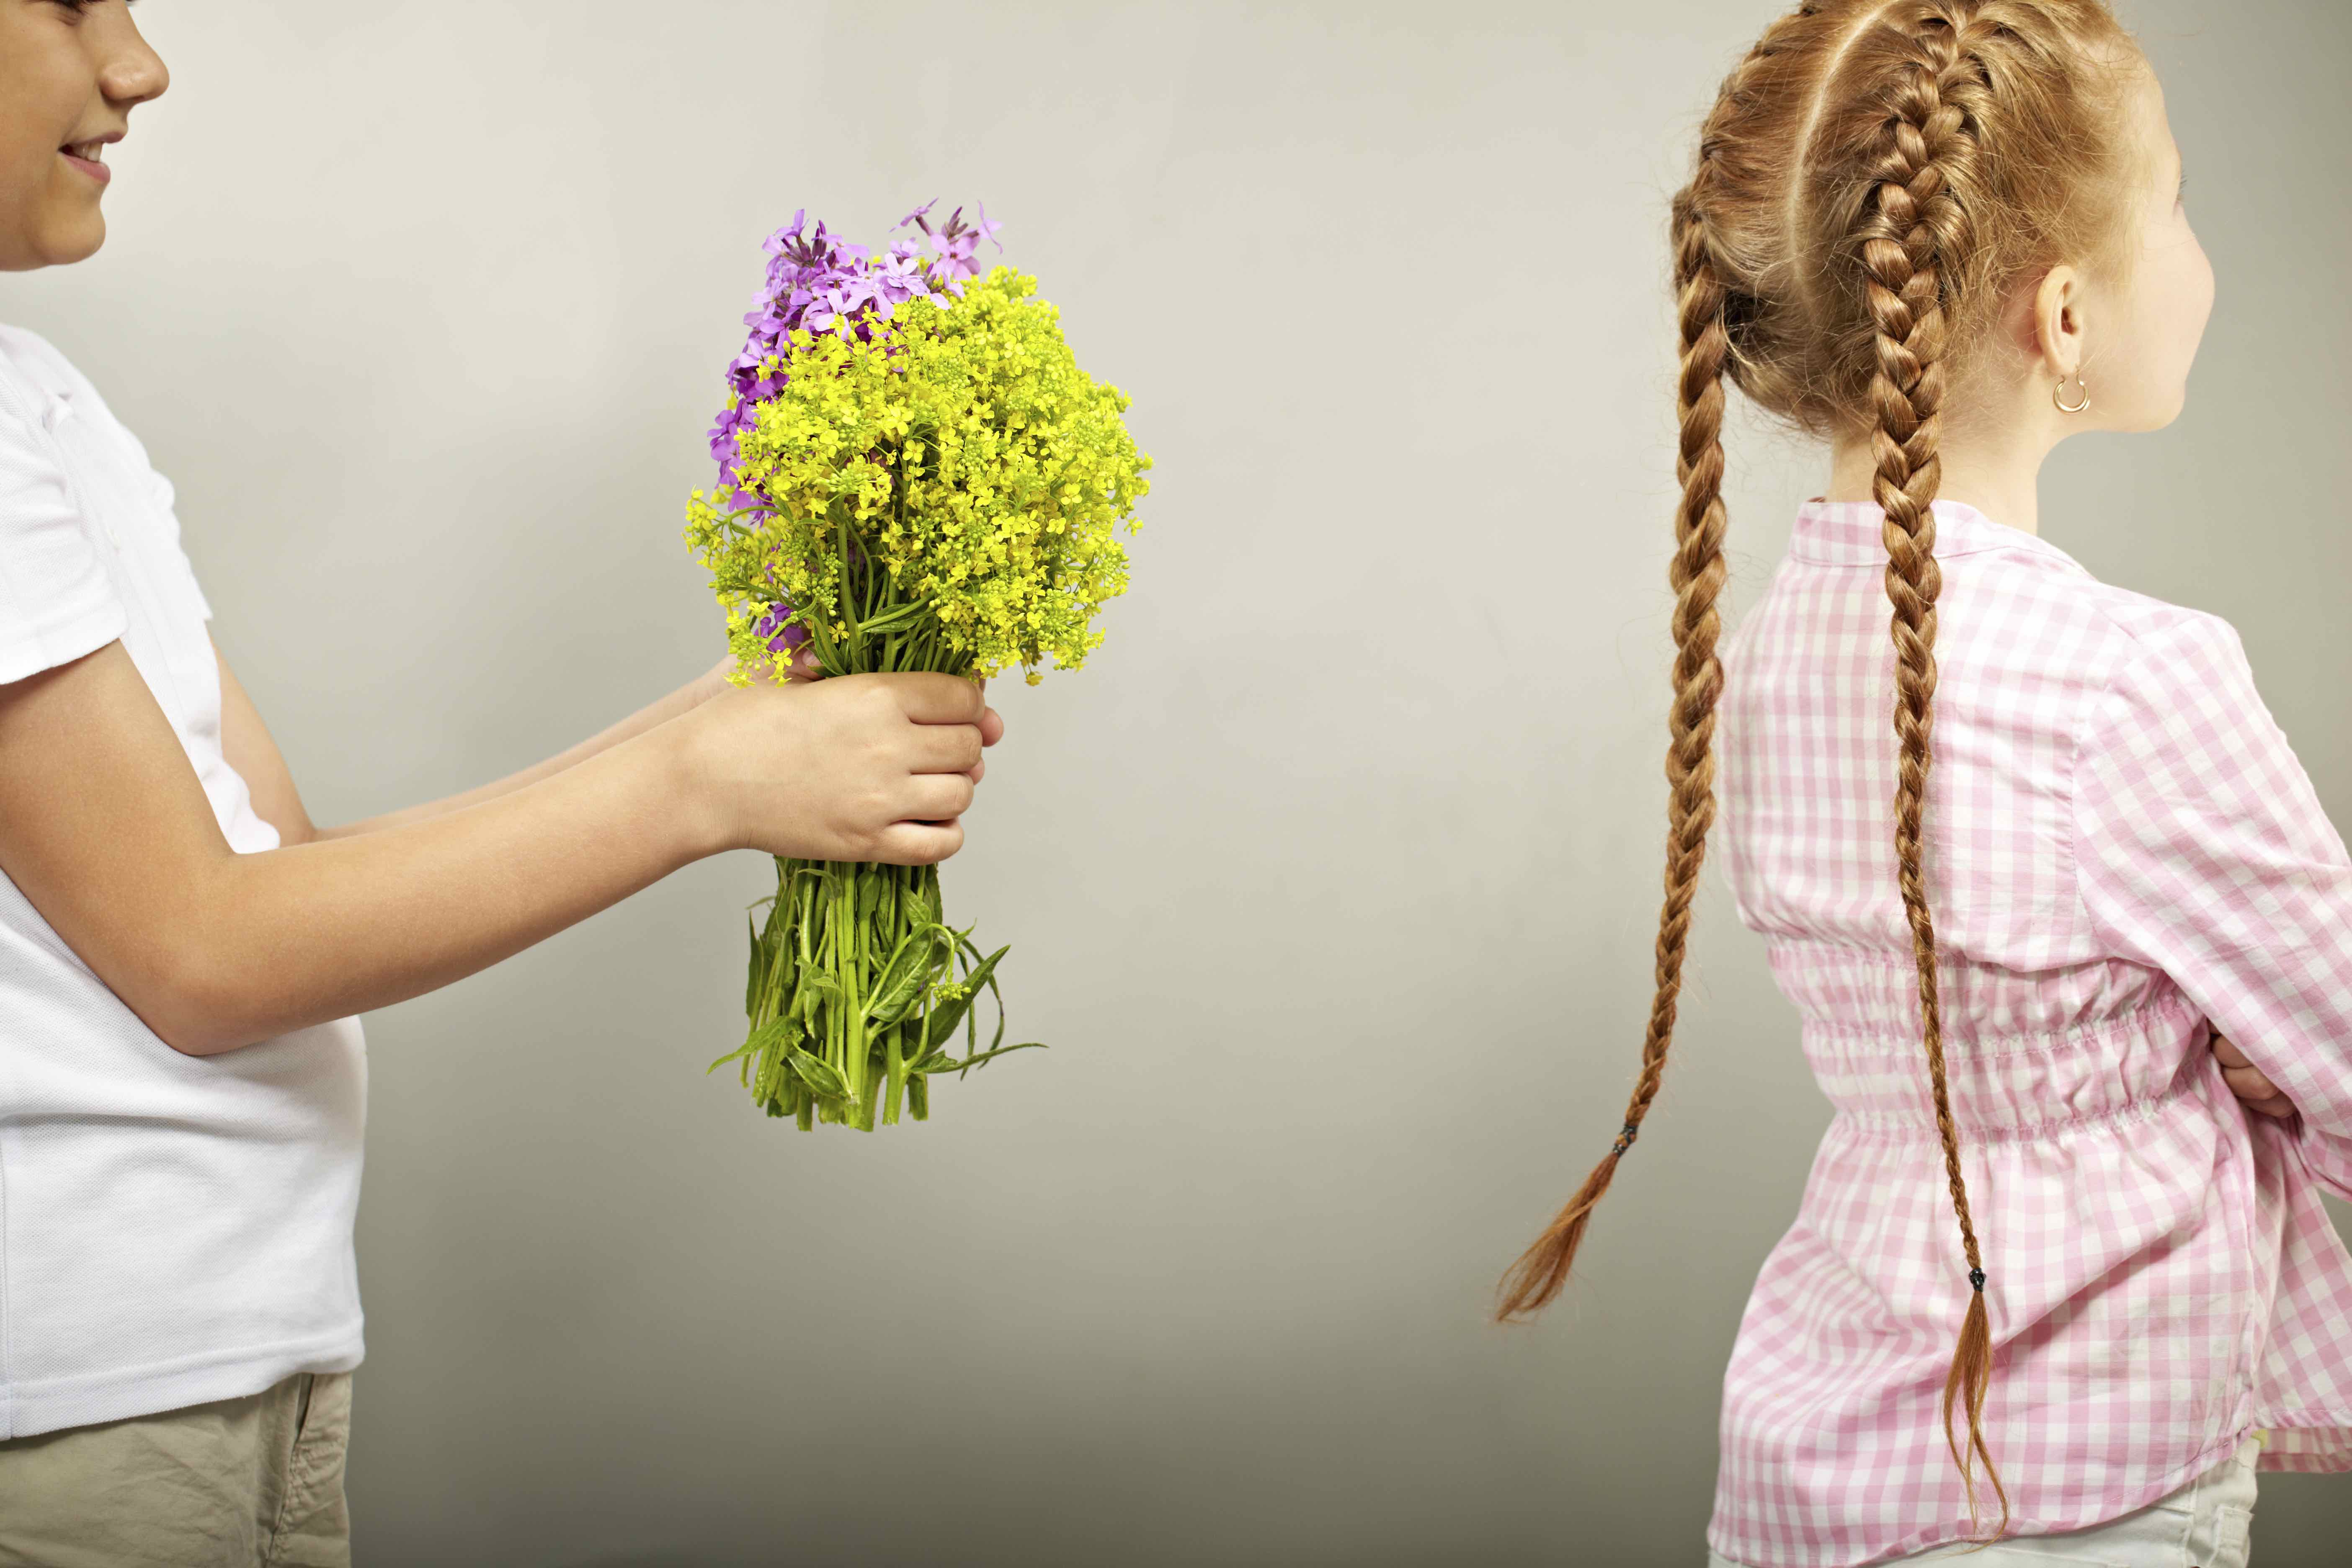 Should you make your child apologize?